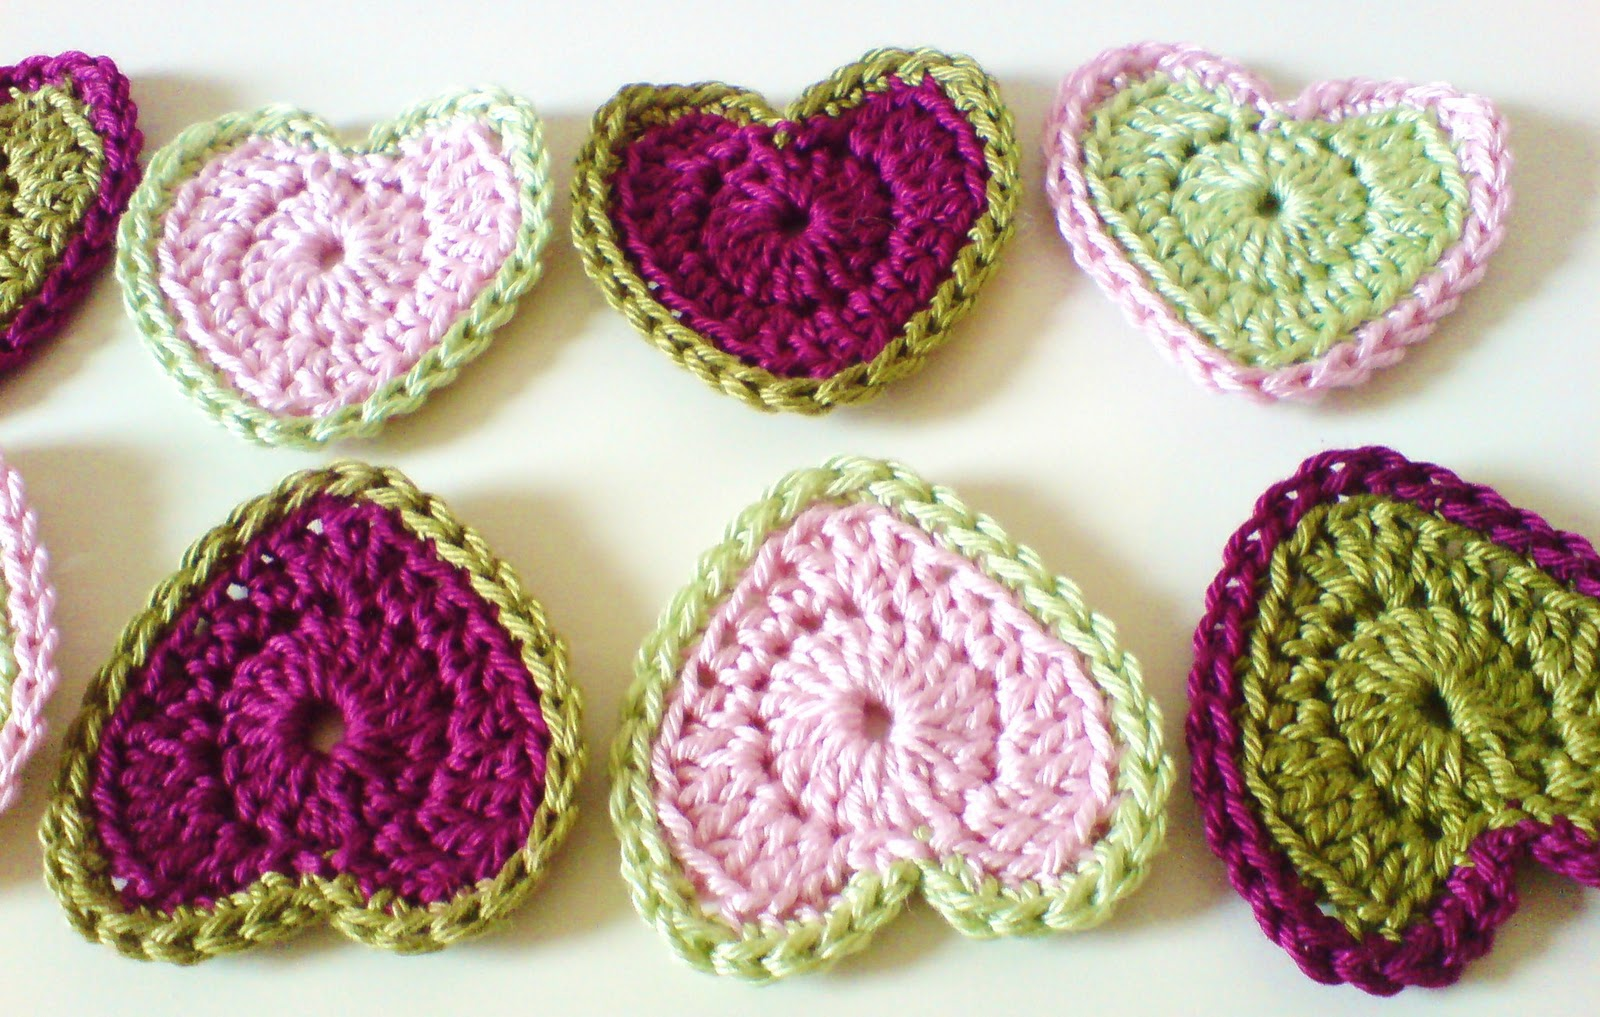 Microcknit creations perfect hearts filling you with love crochet patterns how to crochet hearts hearts garland hearts bunting hearts bankloansurffo Images